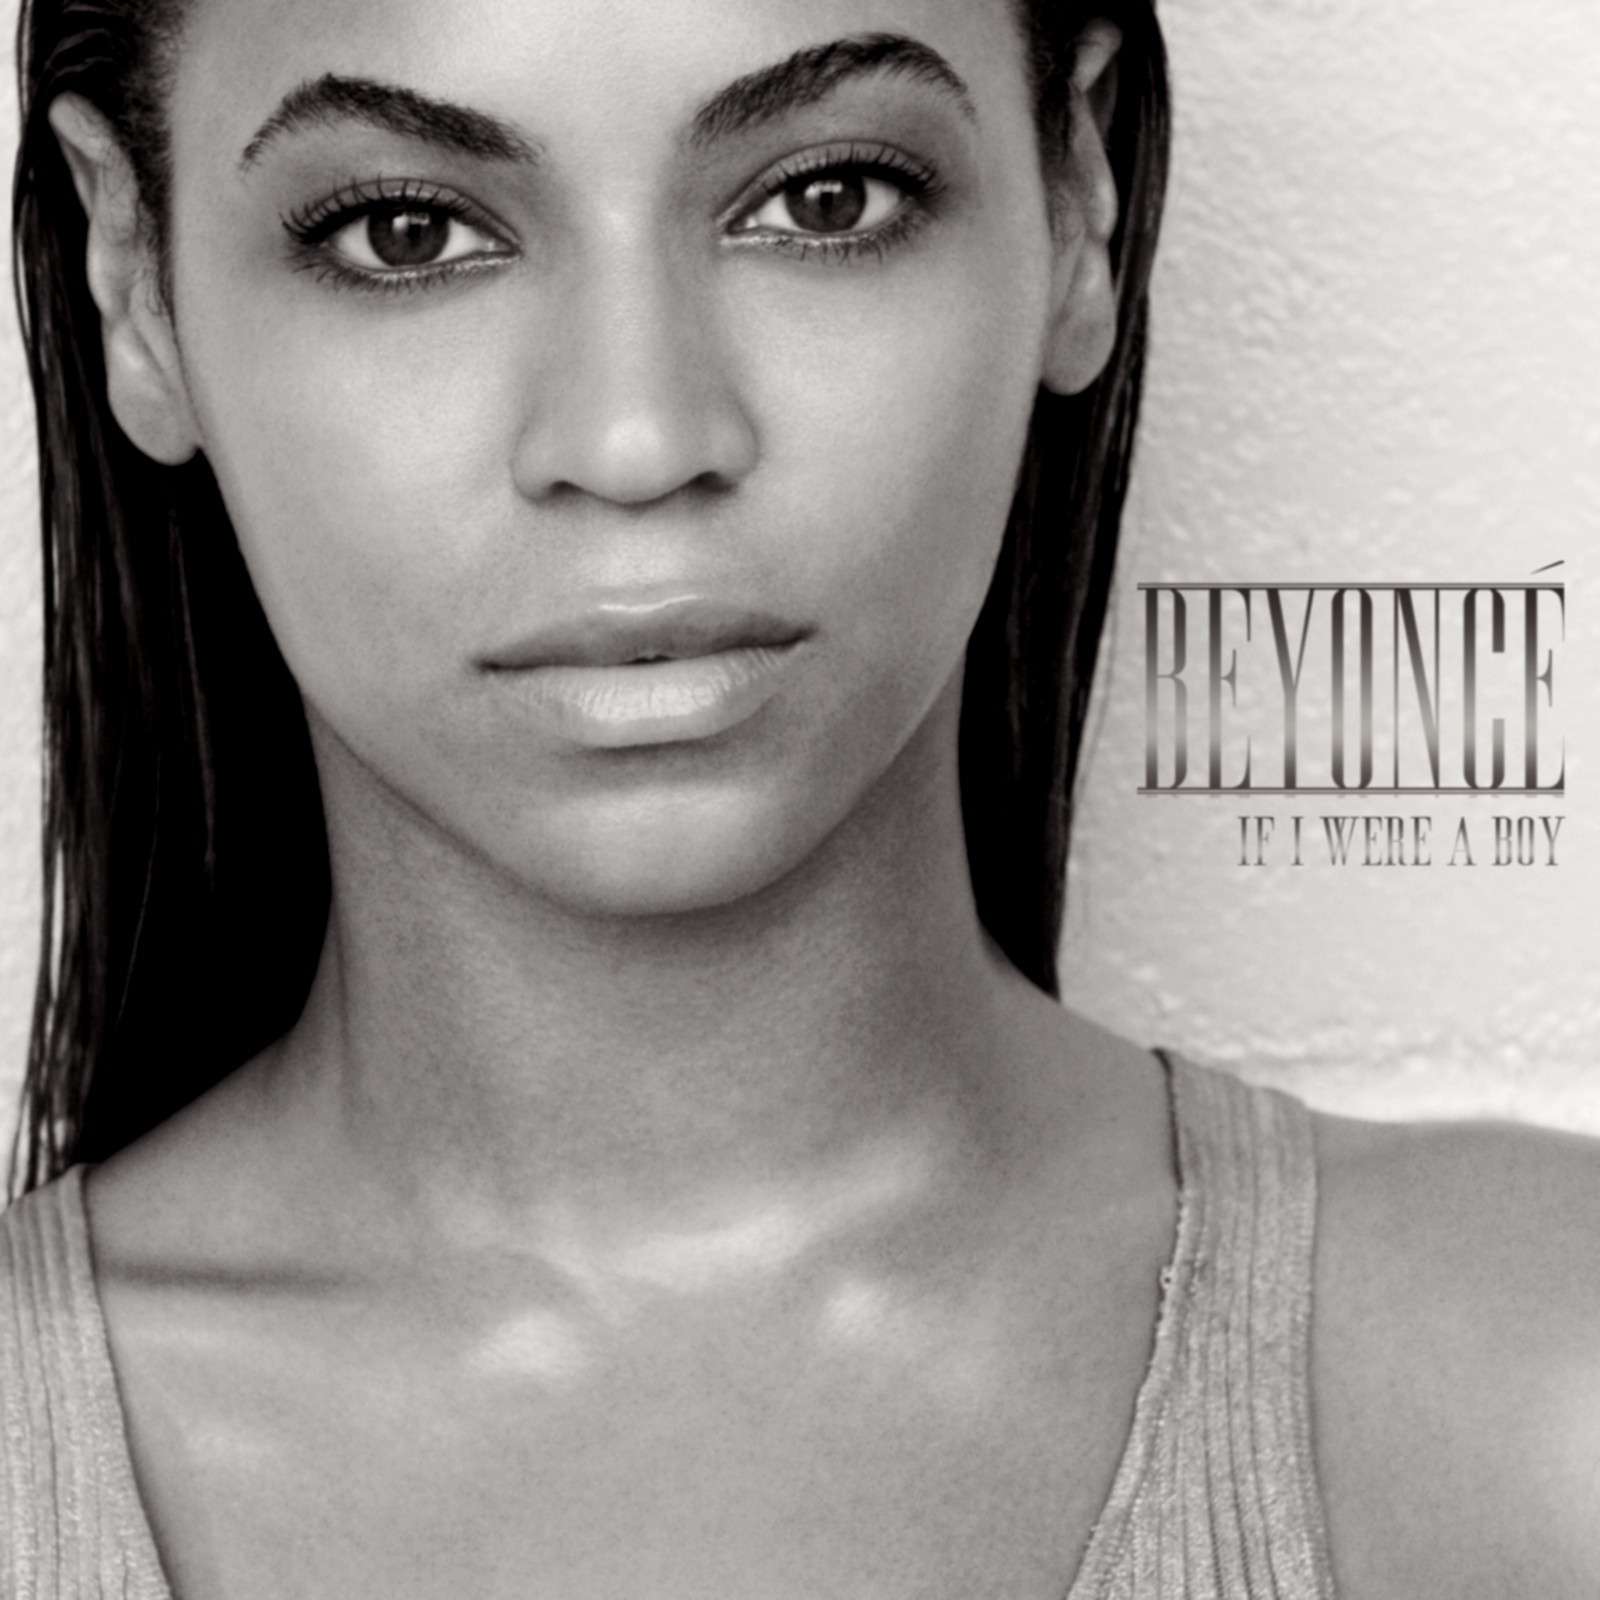 What is your favourite song from Beyonce's album: I Am ...